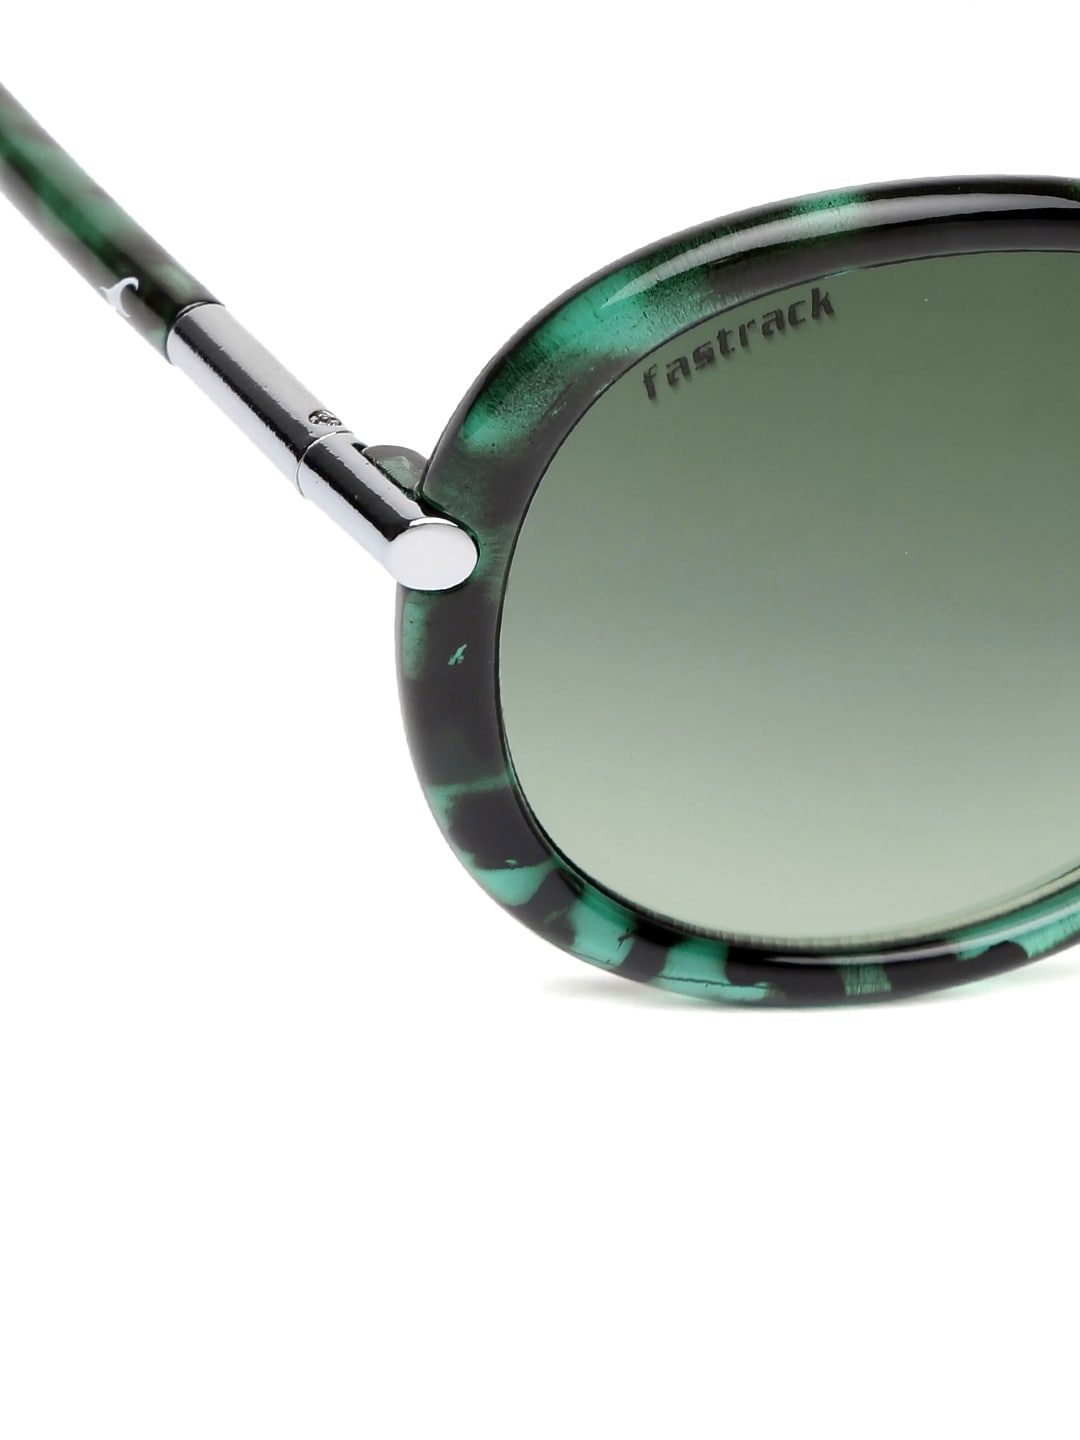 Fastrack Las Sunglasses With Price  sporty archives glasses